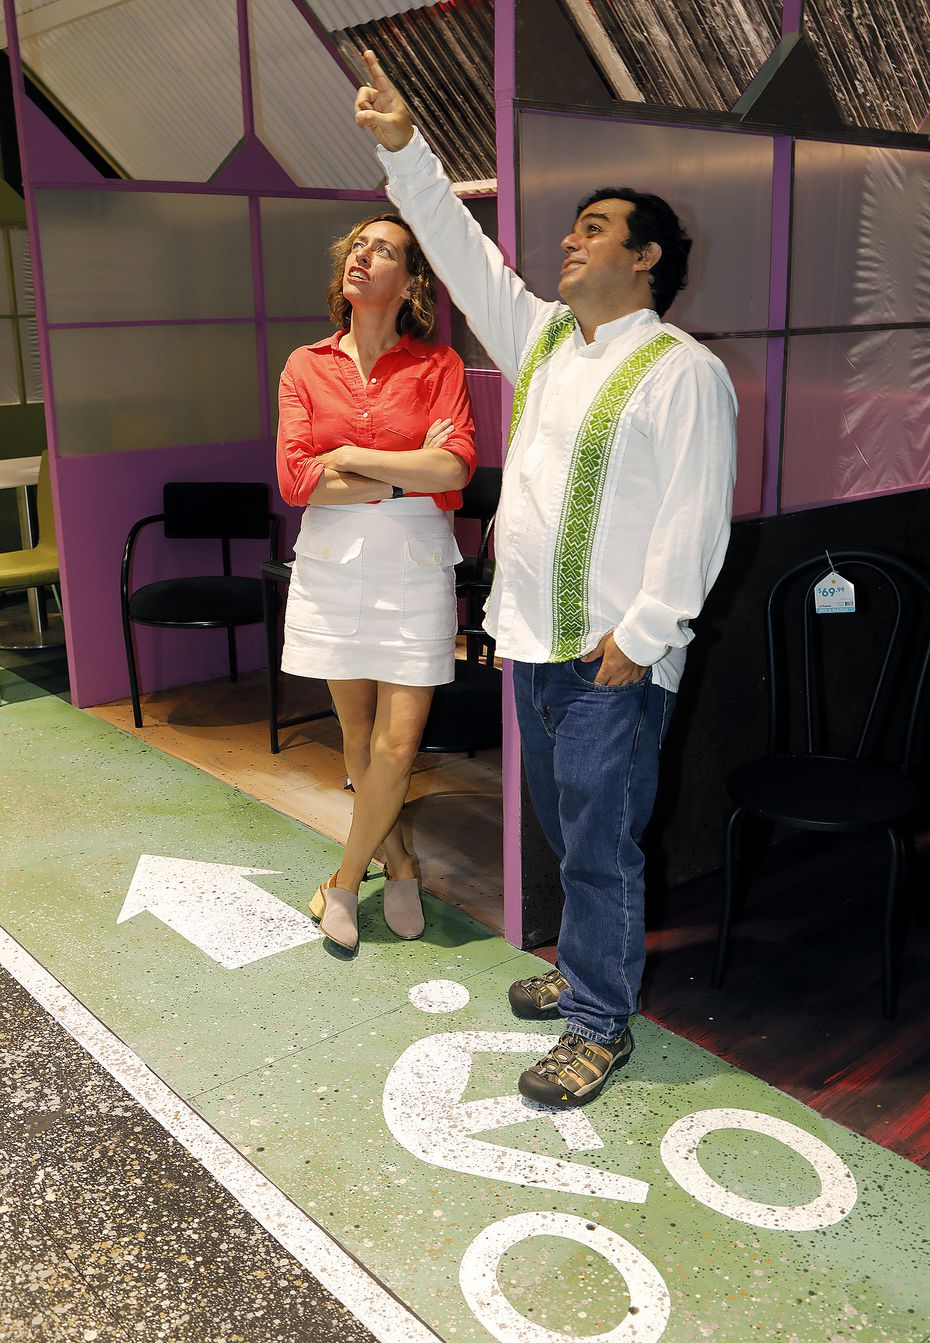 David Lozano, right, points out lighting details to Sara Cardona in the new black box theater at the Latino Cultural Center. Their groups, Cara Mia Theatre and Teatro Dallas, begin using the space this month.